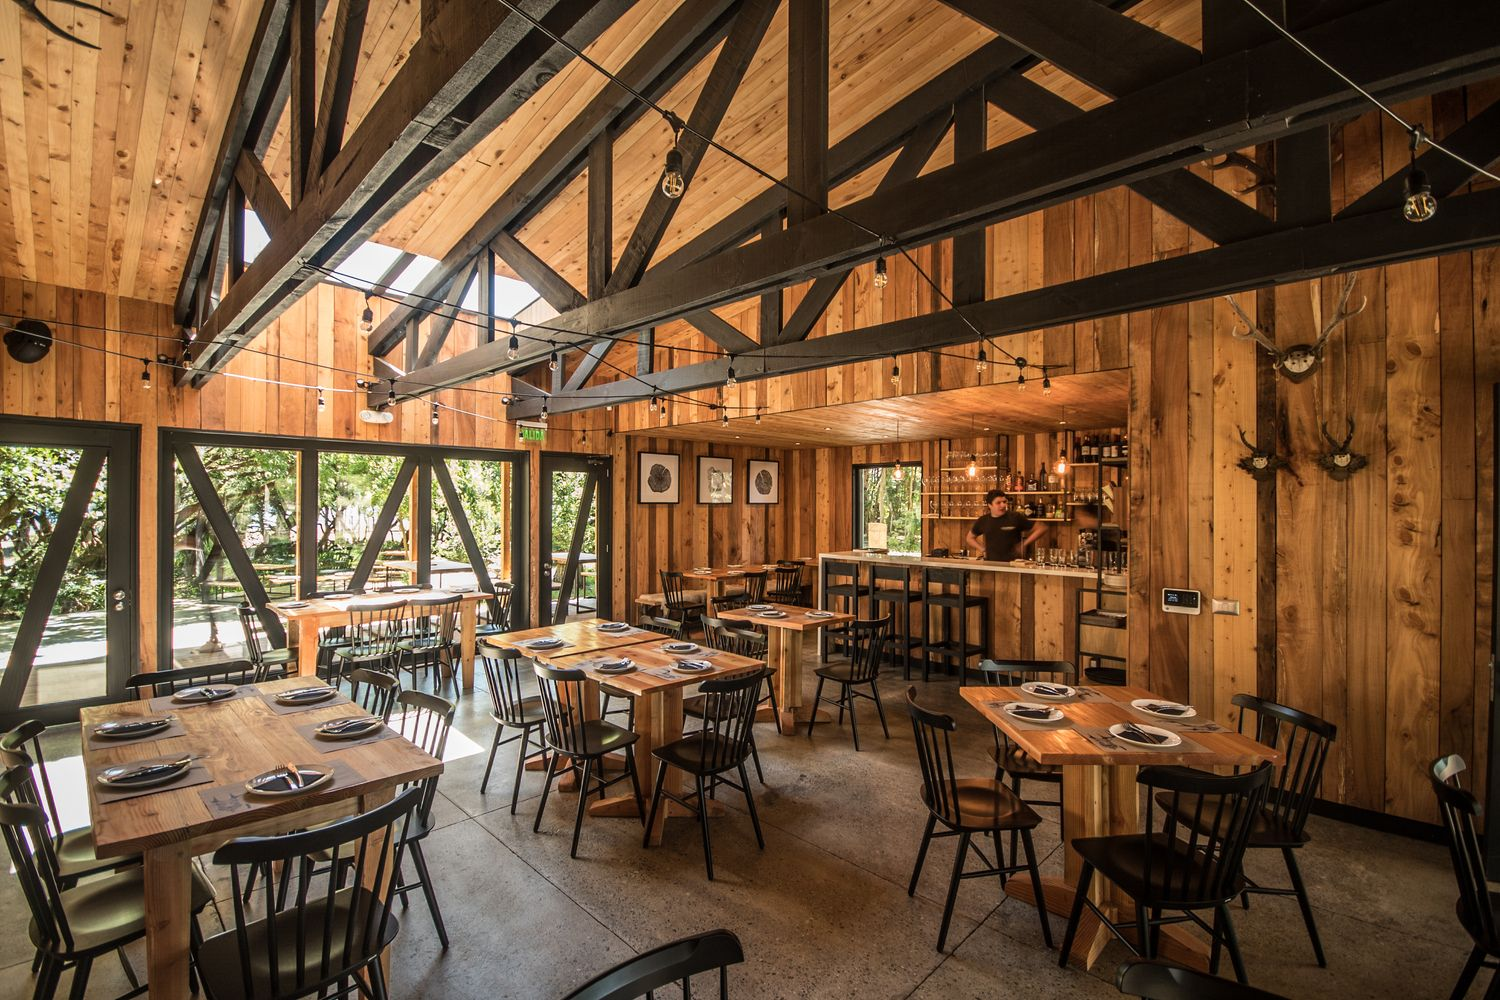 Gallery Of The Beauty Of Exposed Wooden Trusses 6 Restaurant Alinea Architecture